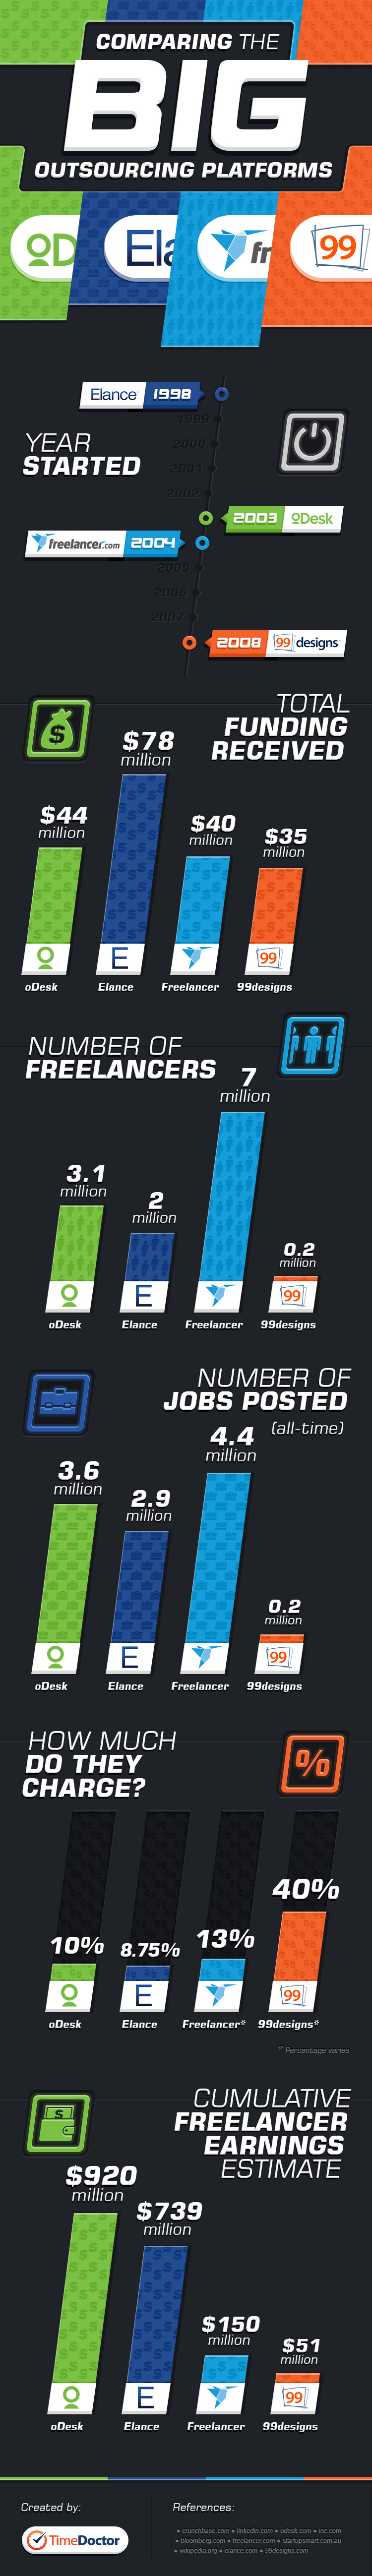 Outsourcing Industry Overview-Infographic